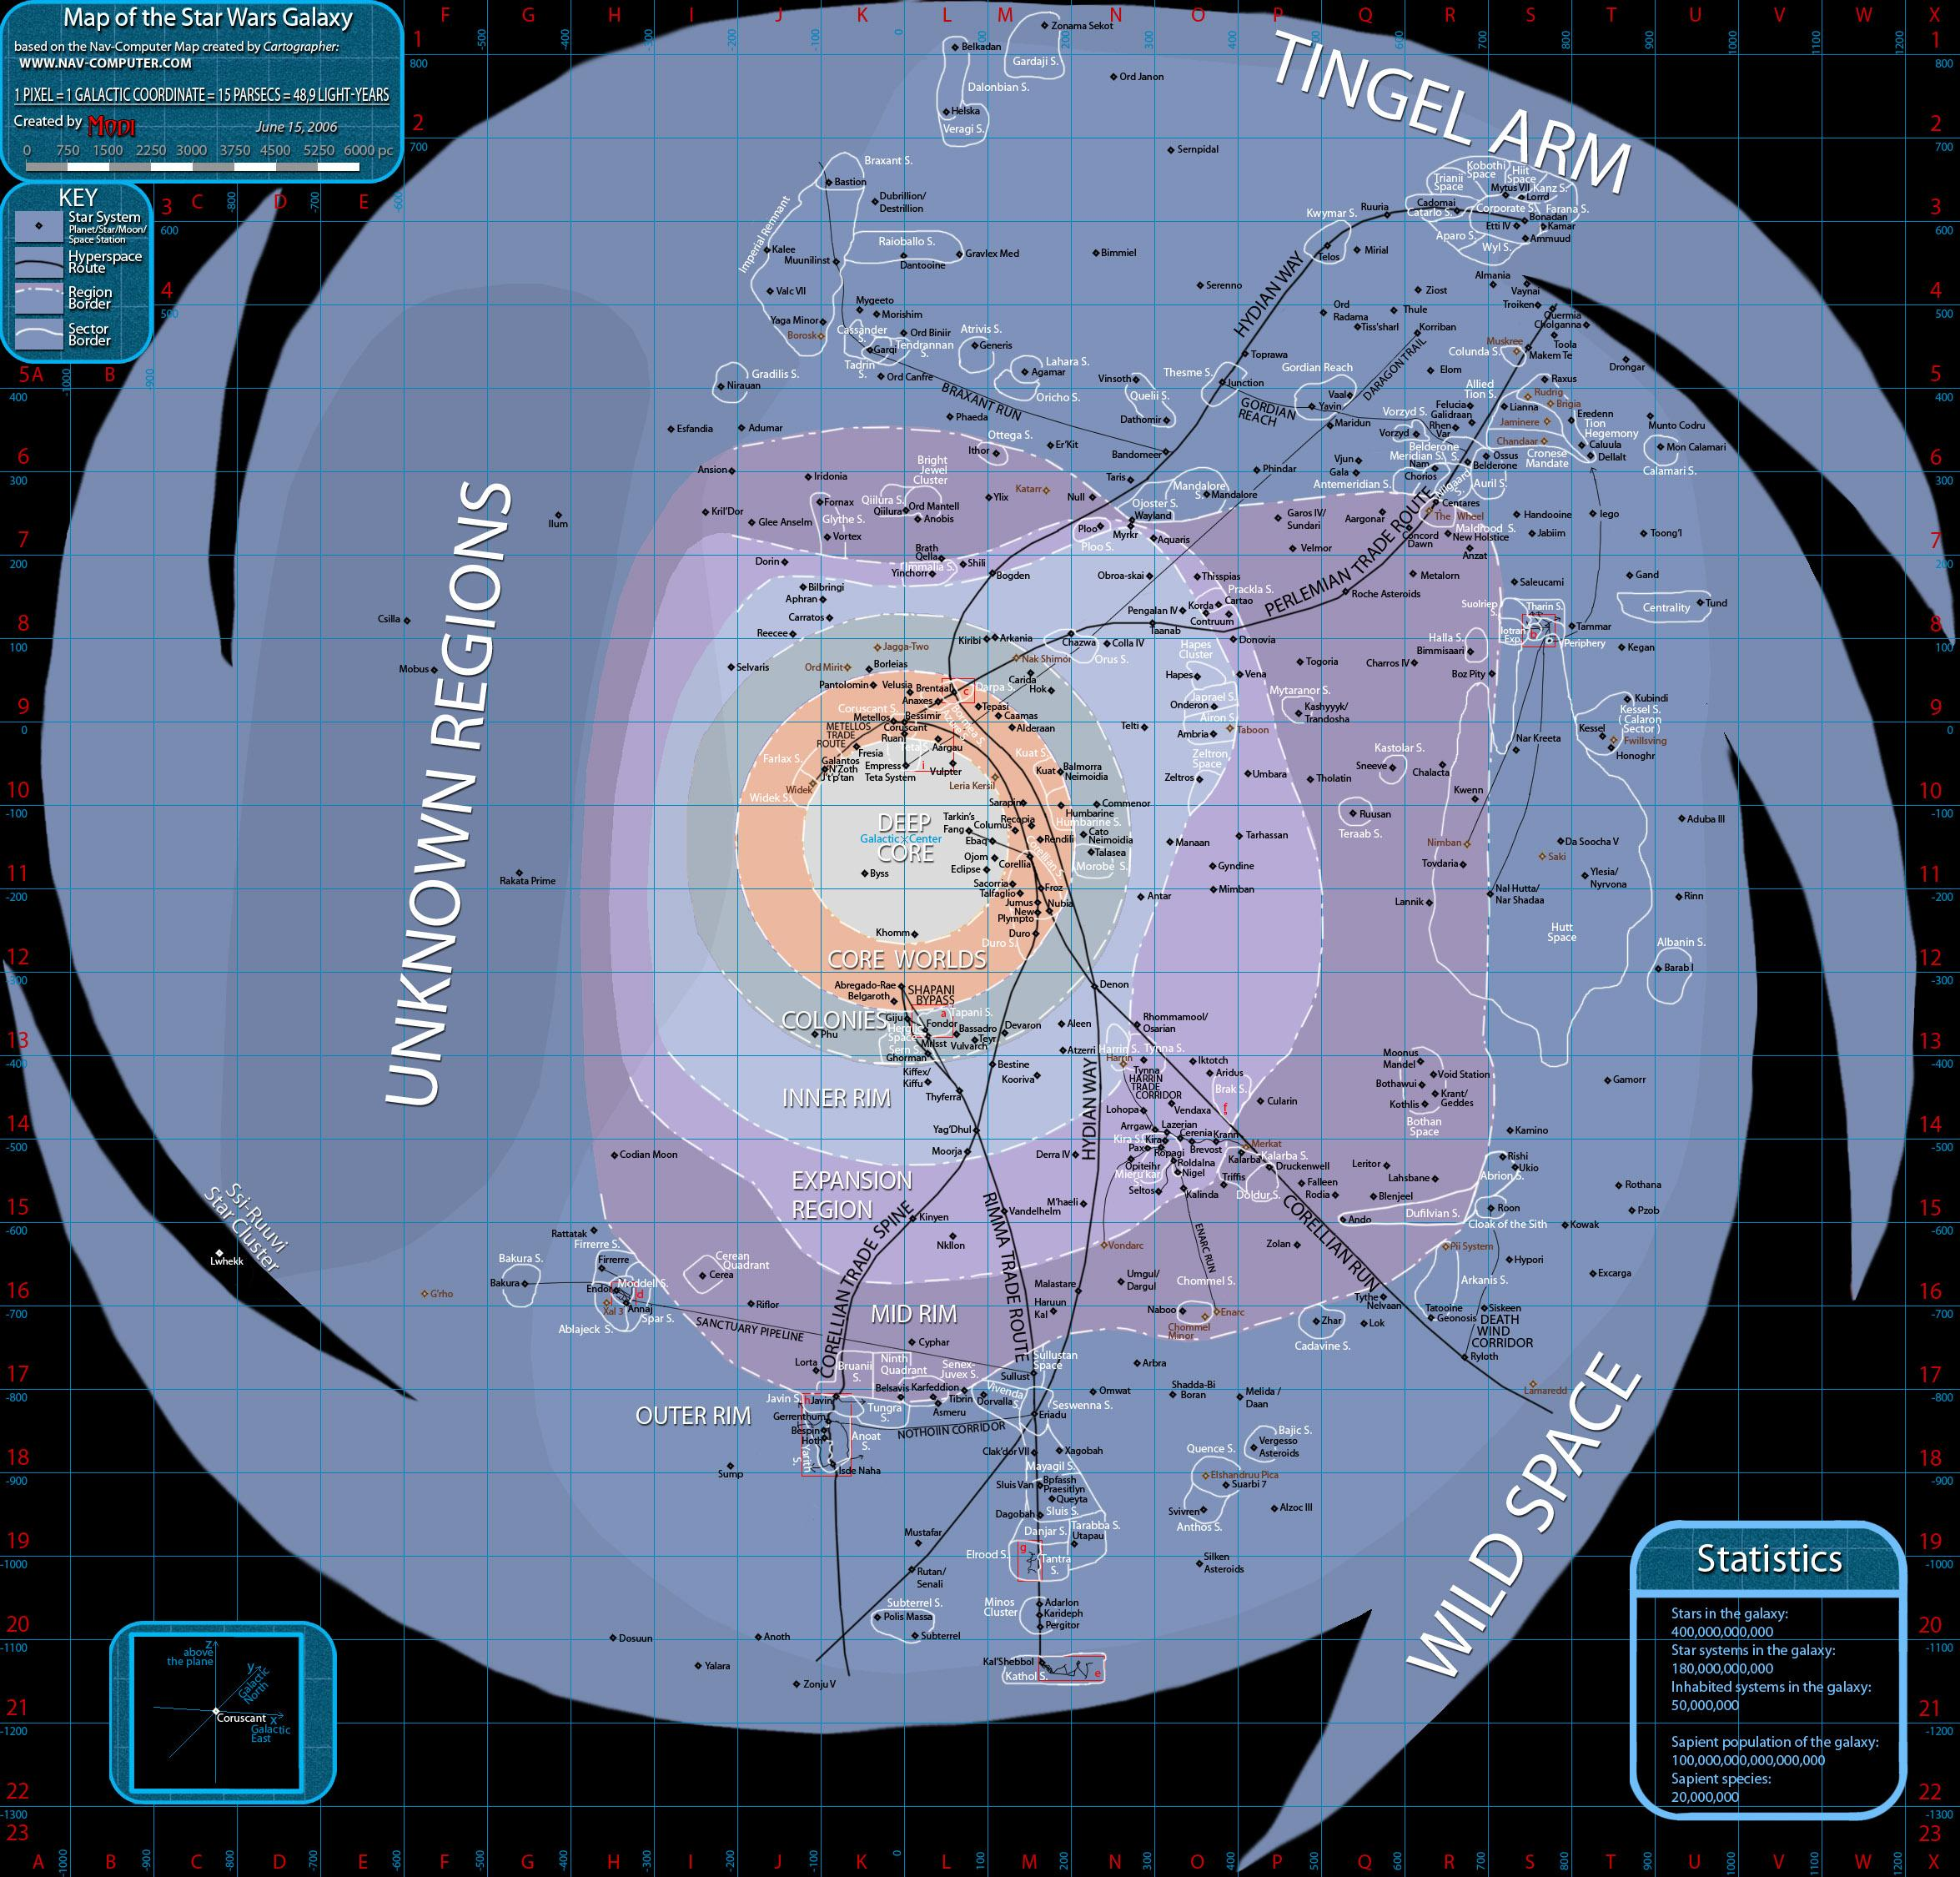 How Many Planets Are There In The Star Wars Universe Quora - Star wars solar system map